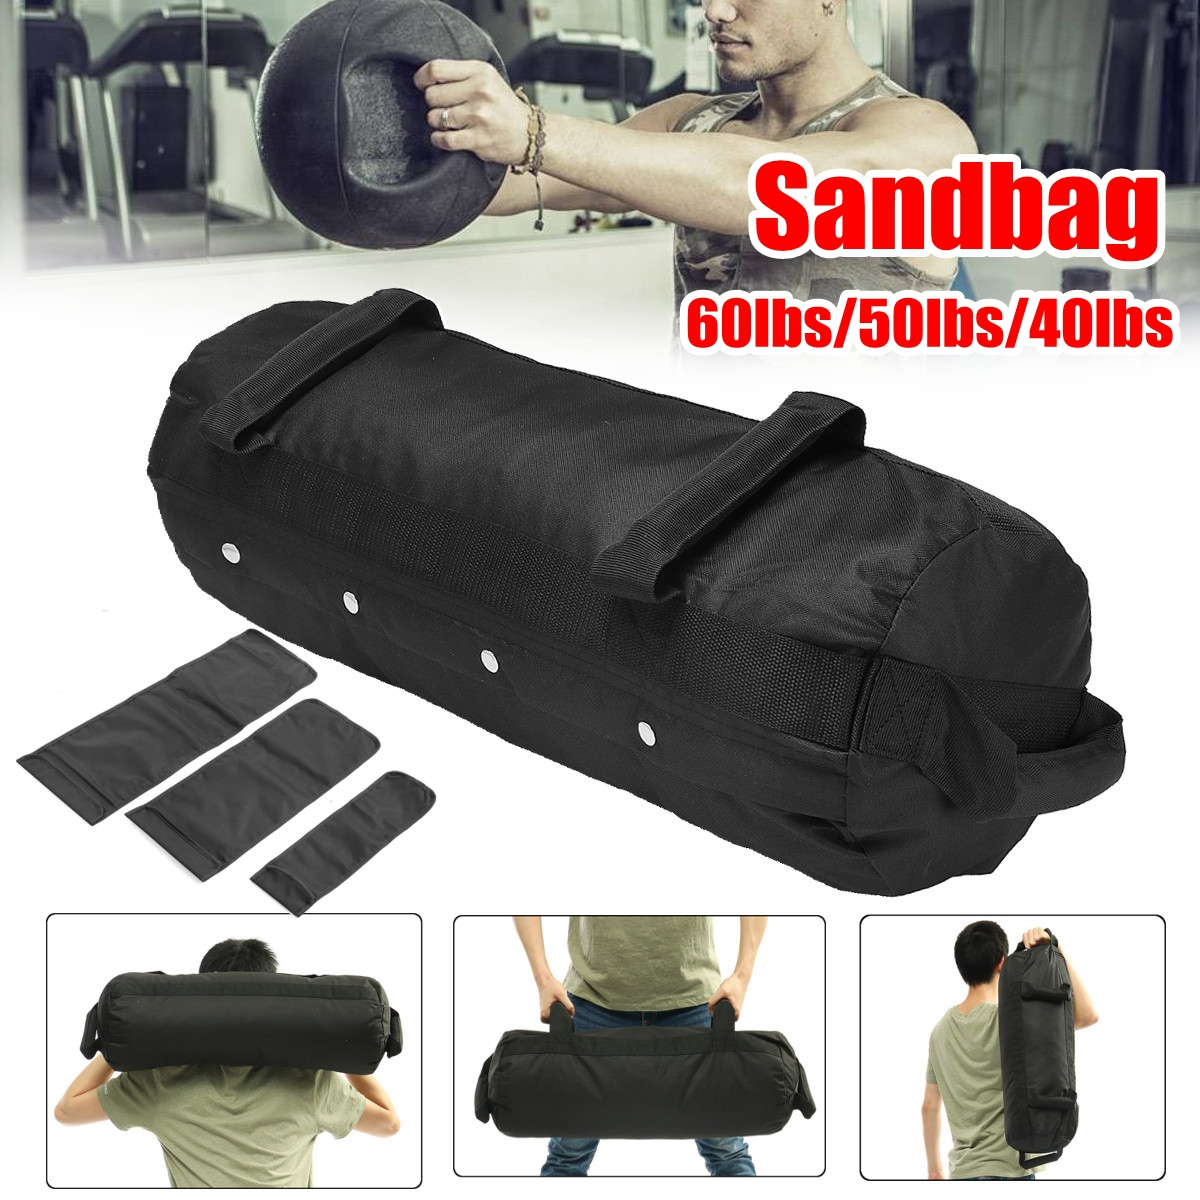 4 Pcs/Set Weightlifting Sandbag Heavy  Sand Bags Sand Bag MMA Boxing  Military Power Training Body Fitness Equipment